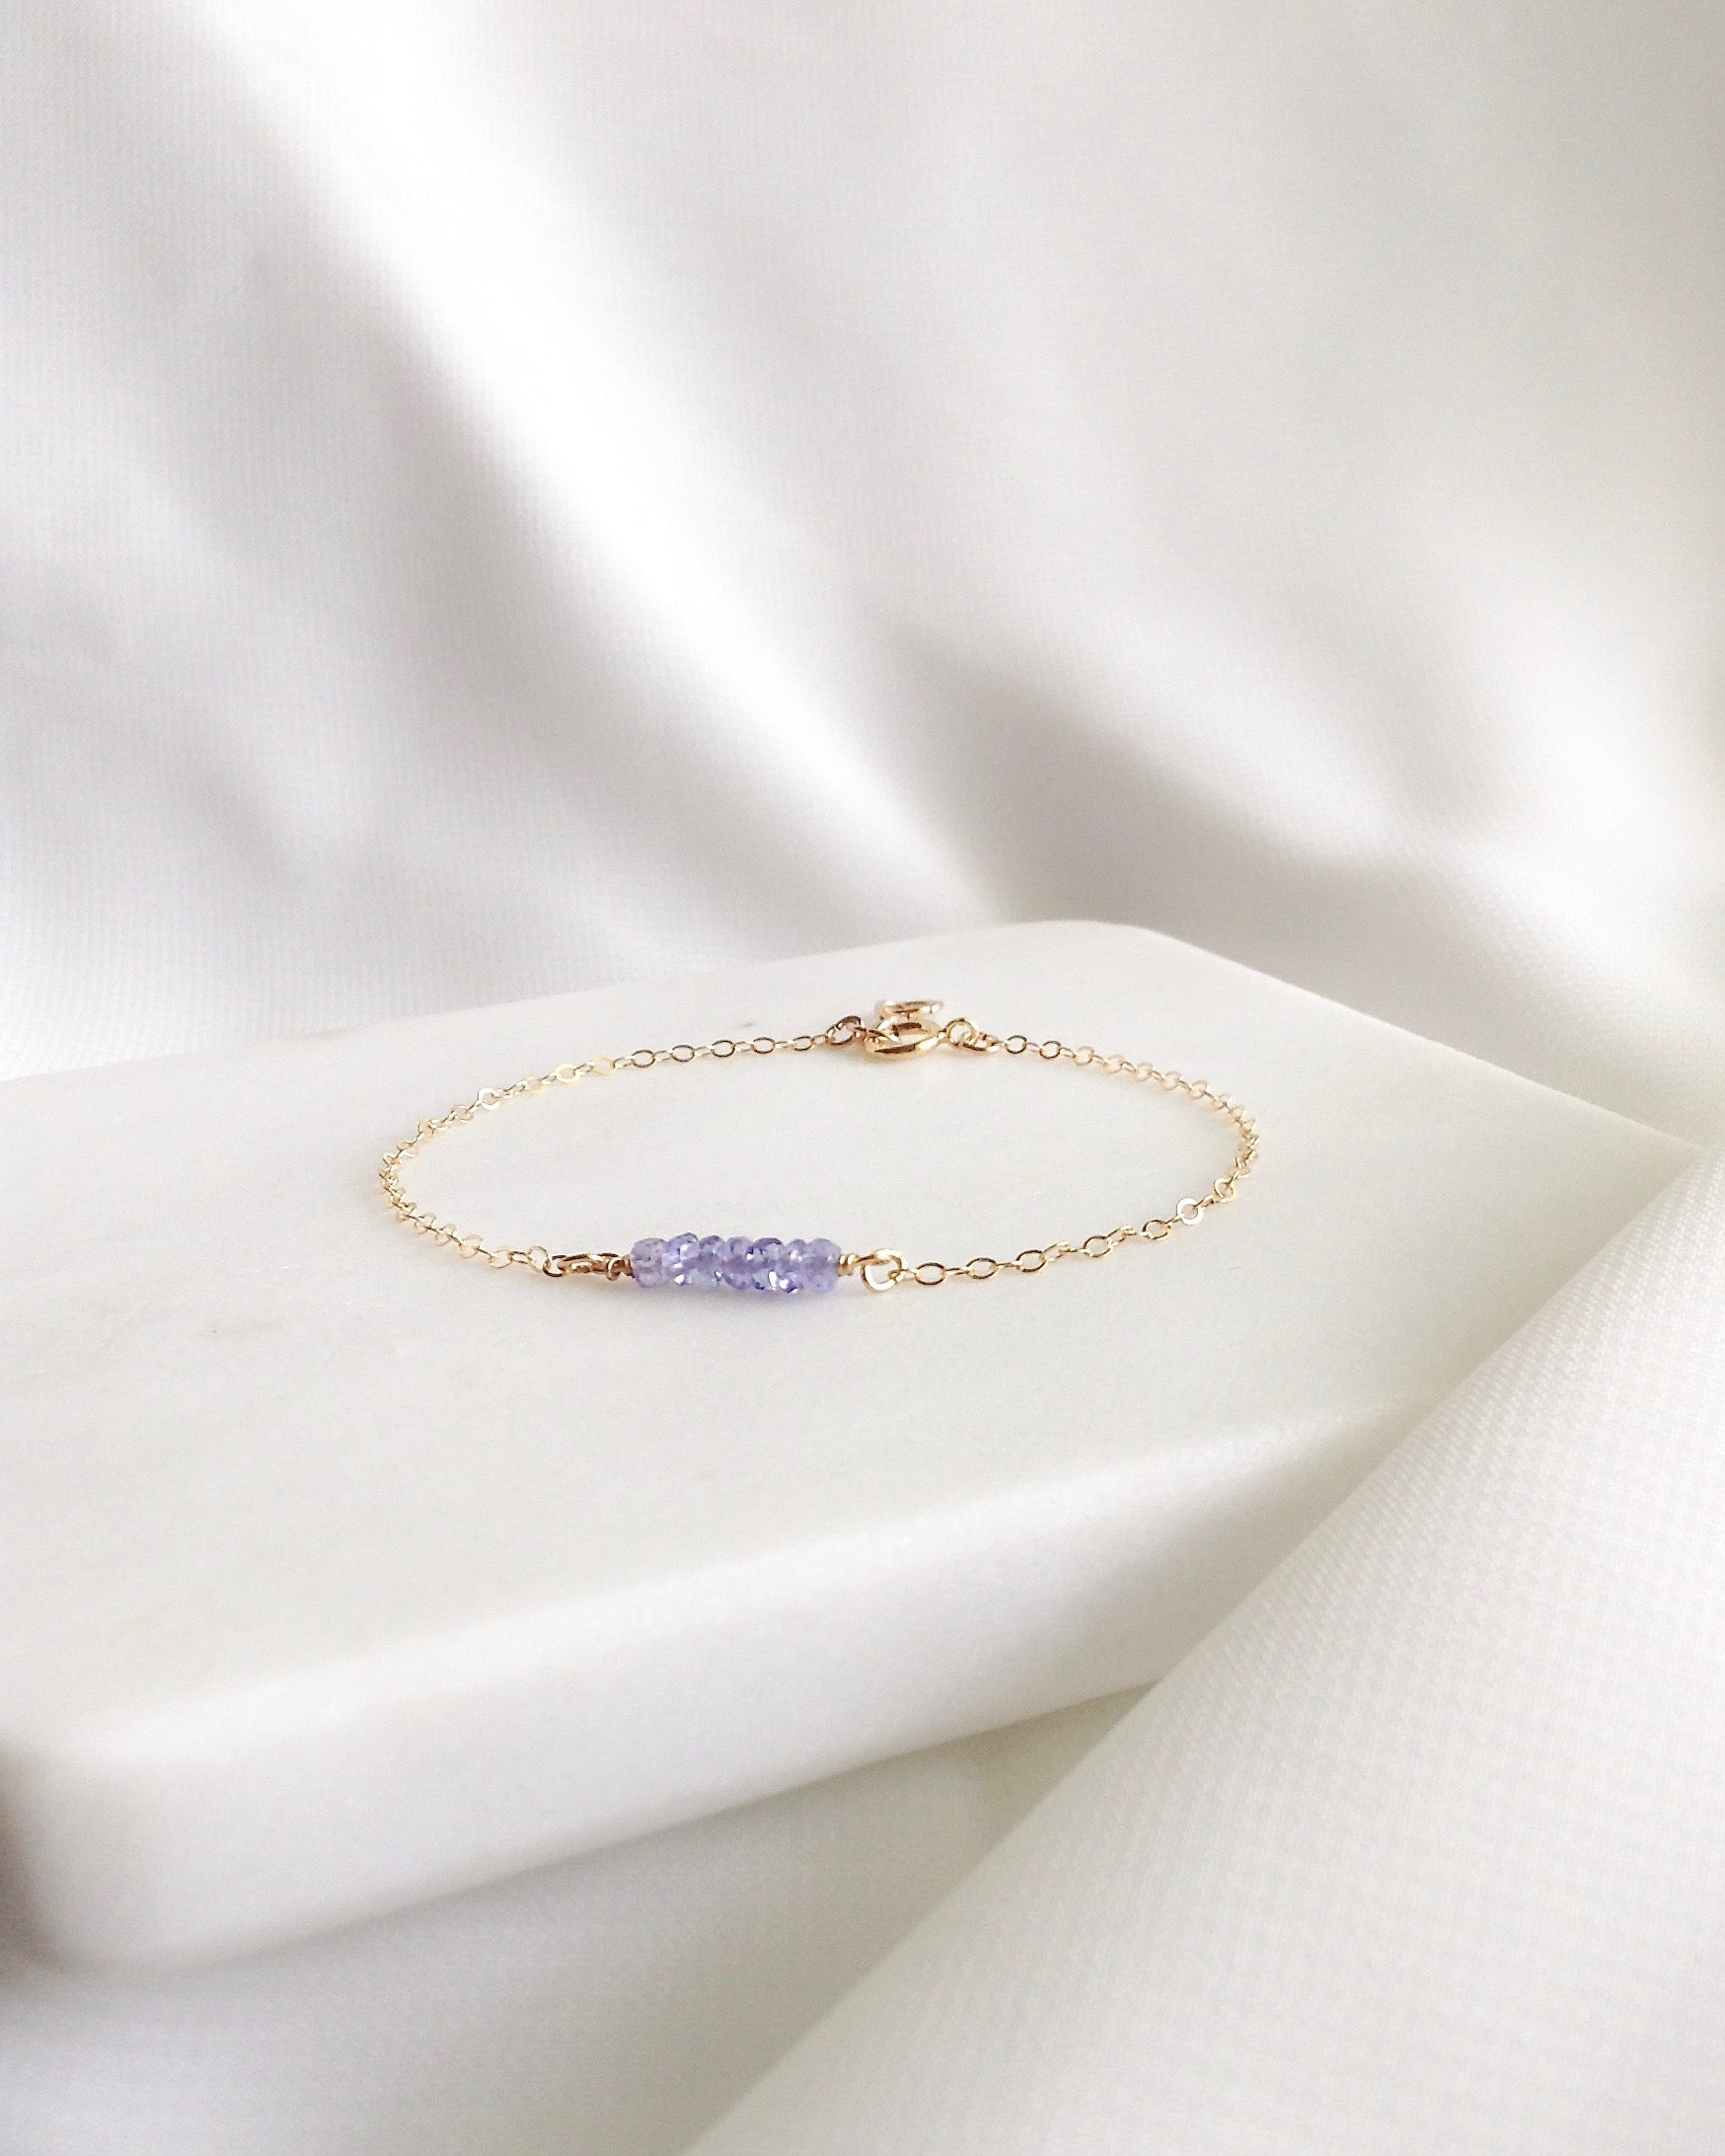 Tiny Tanzanite Bracelet In Gold Filled or Sterling Silver | IB Jewelry